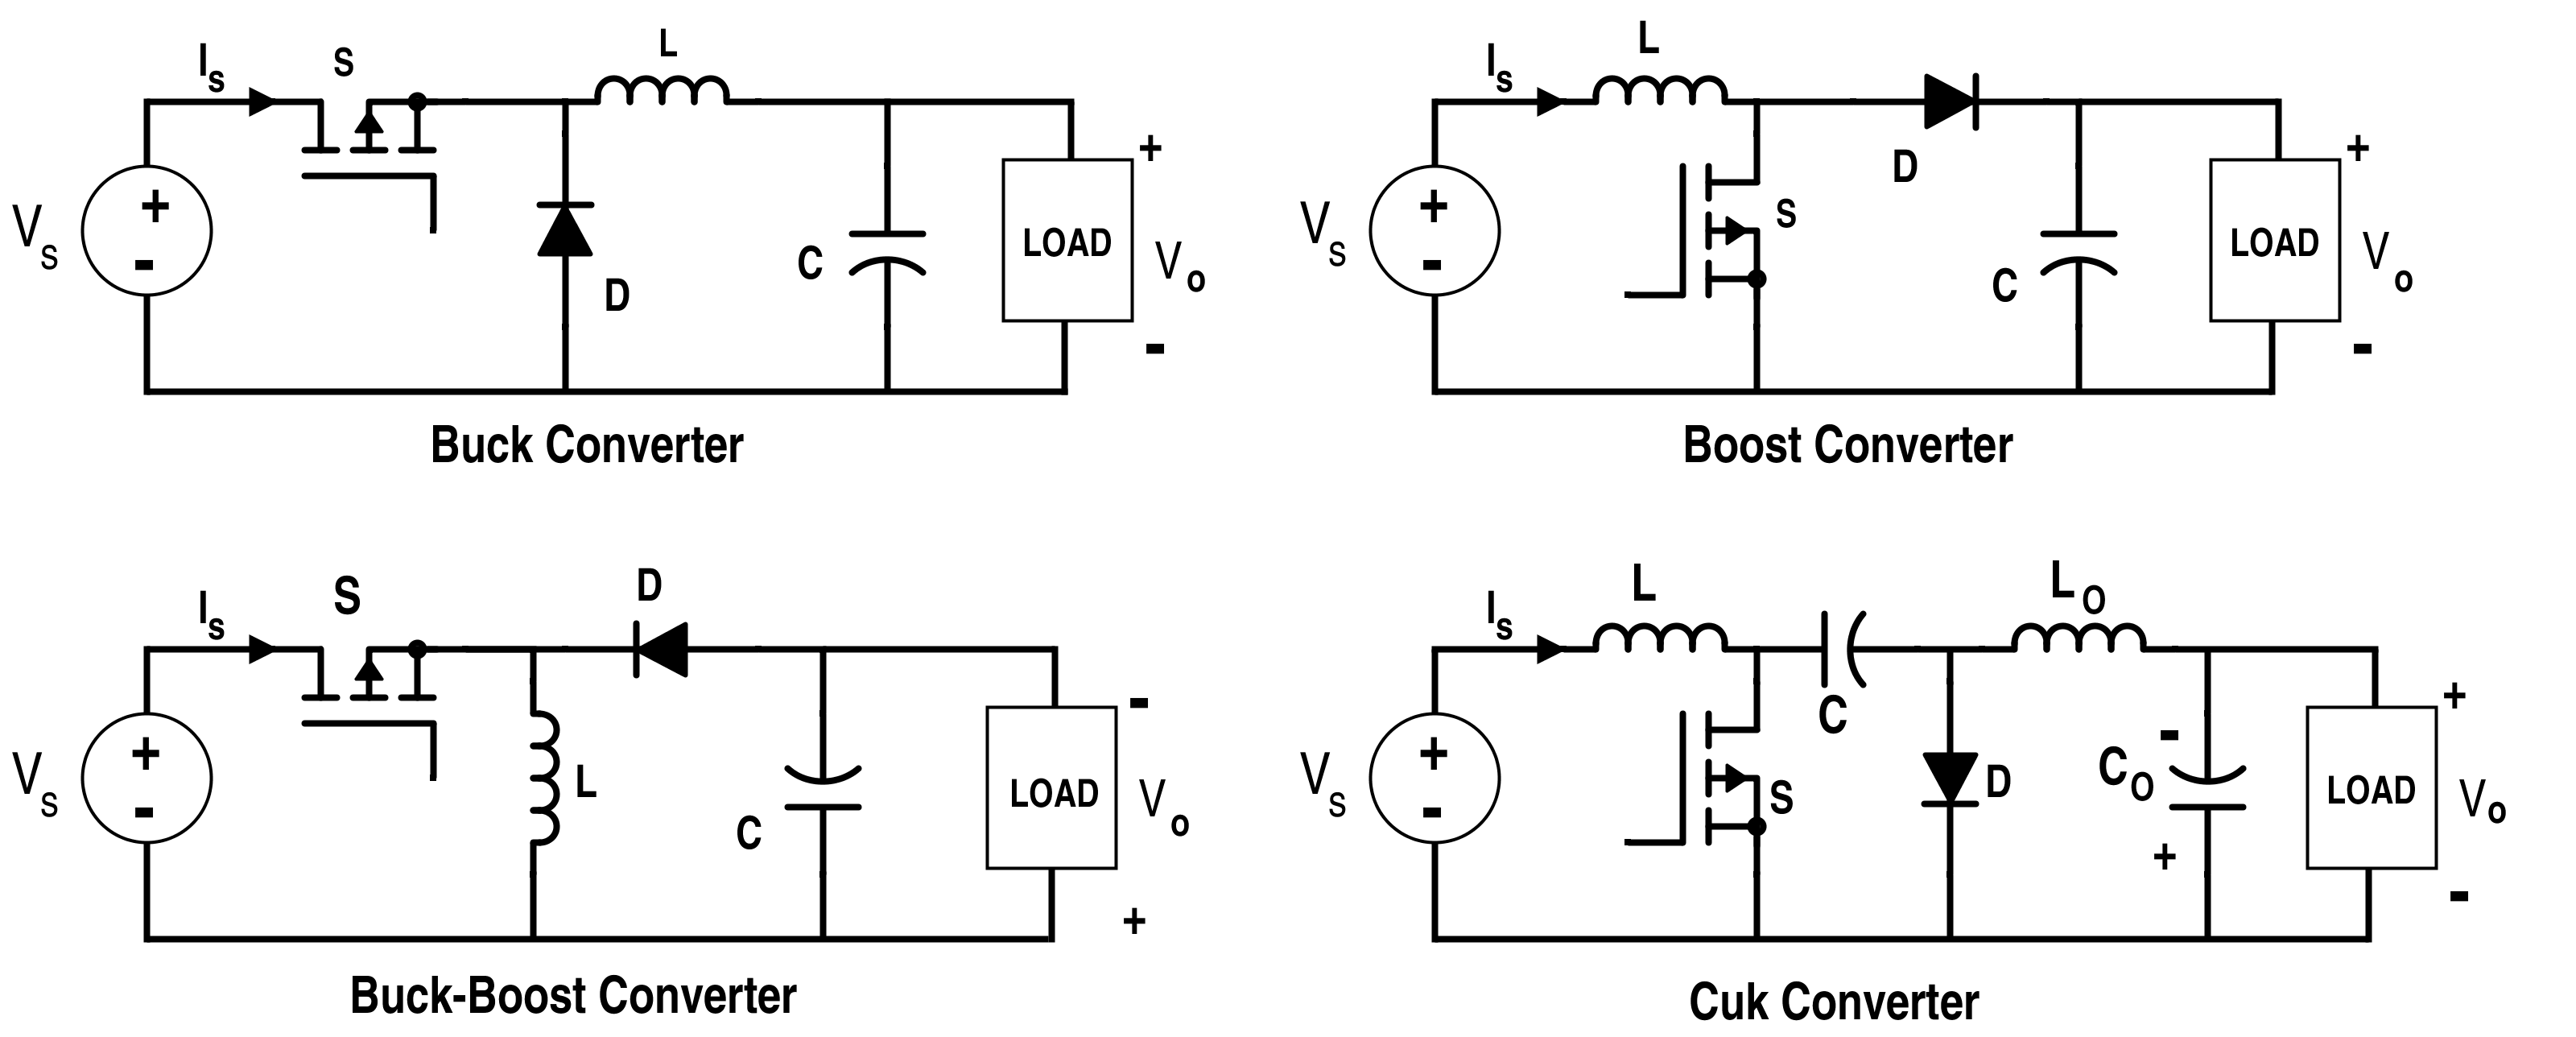 Buck Boost Converter Design Equations